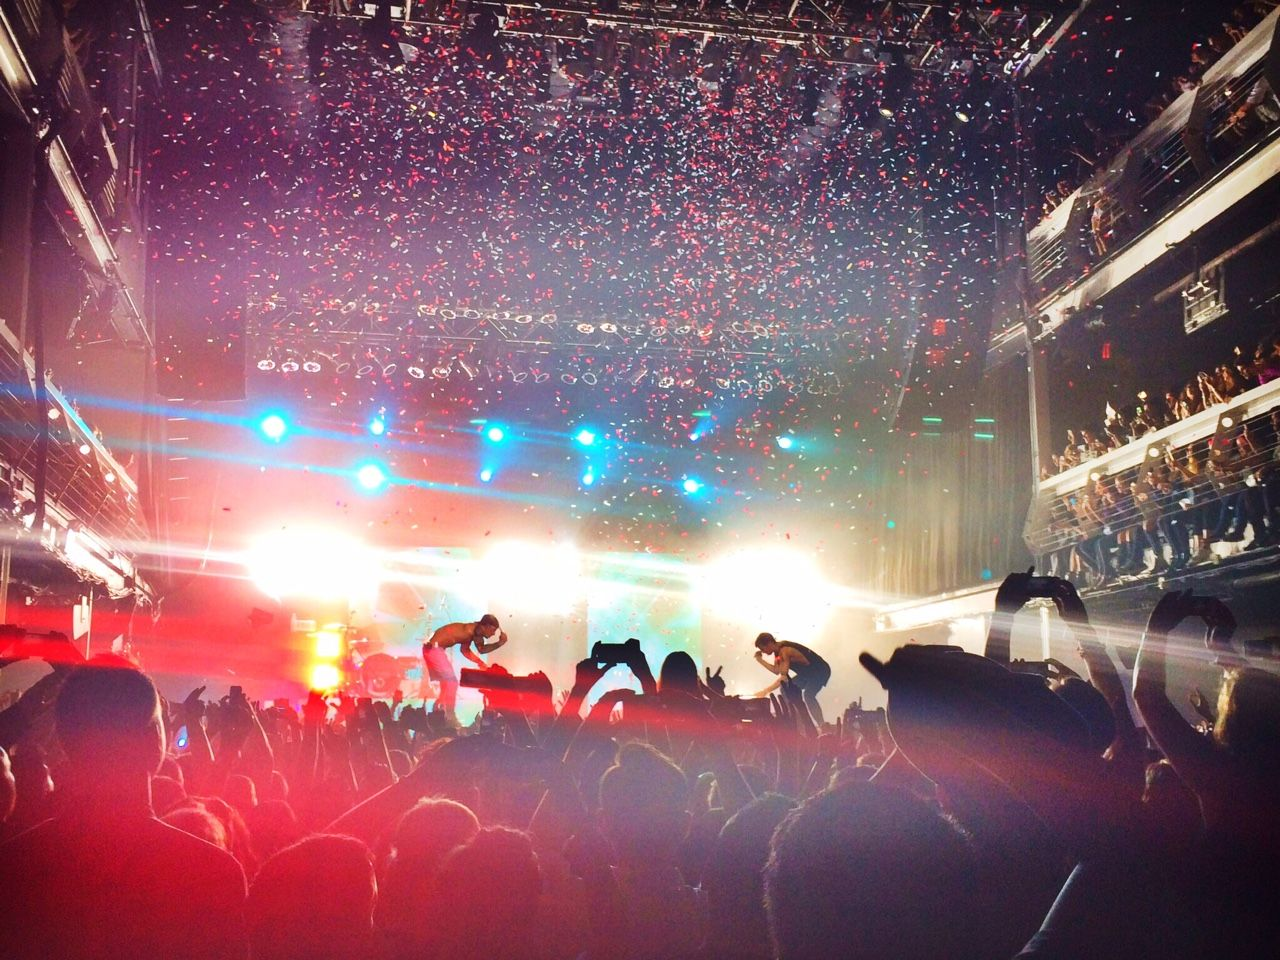 This picture is awesome thank you. |-/